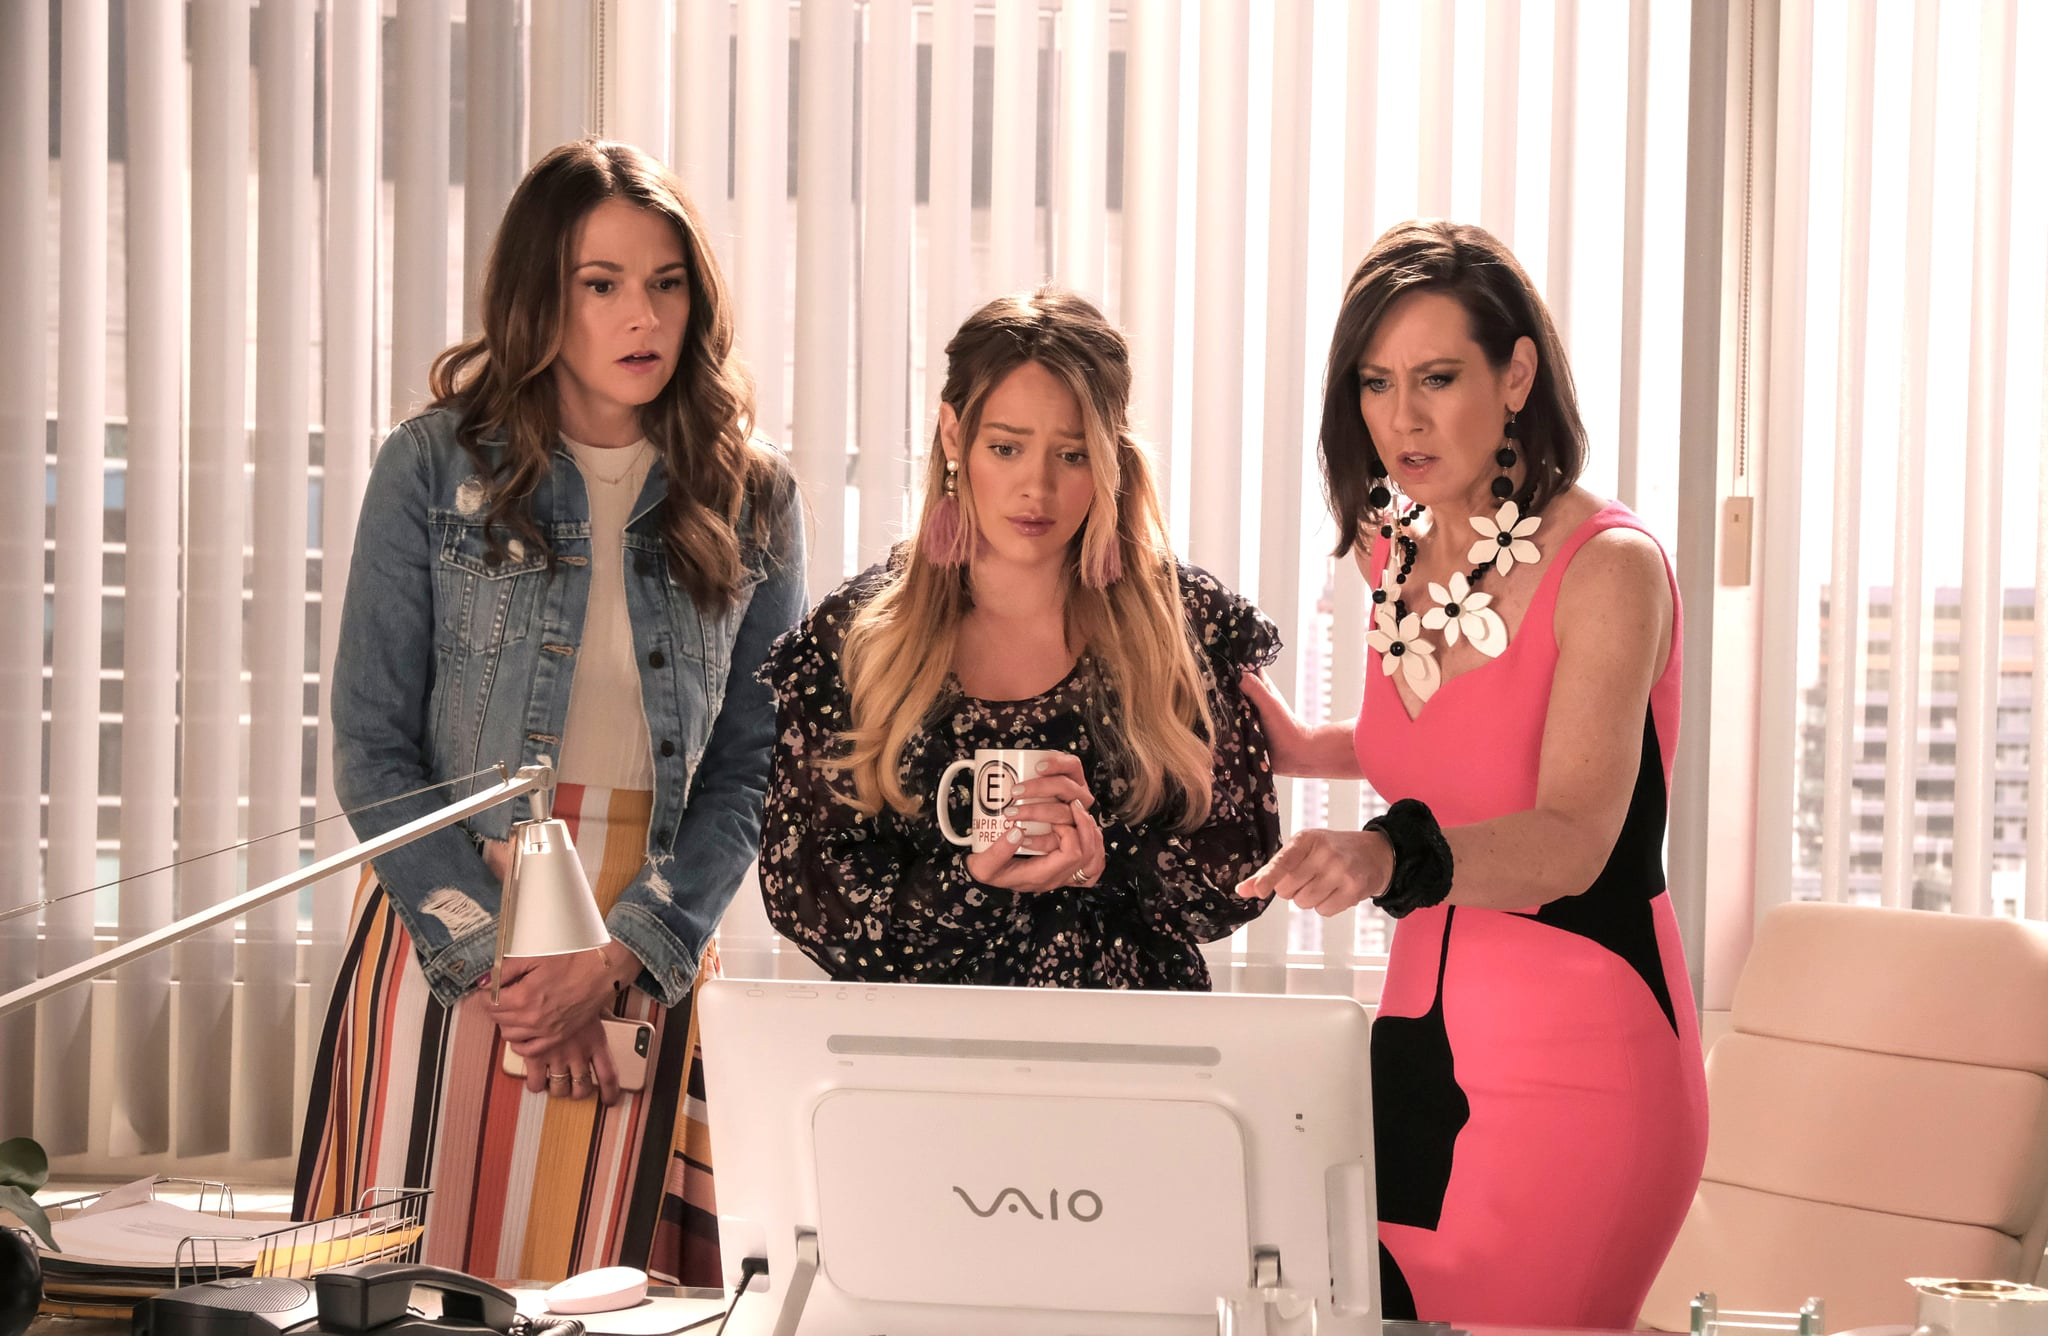 YOUNGER, from left: Sutton Foster, Hilary Duff, Miriam Shor, 'Lizability', (Season 5, ep. 512, aired Aug. 28, 2018). ©TV Land / courtesy Everett Collection